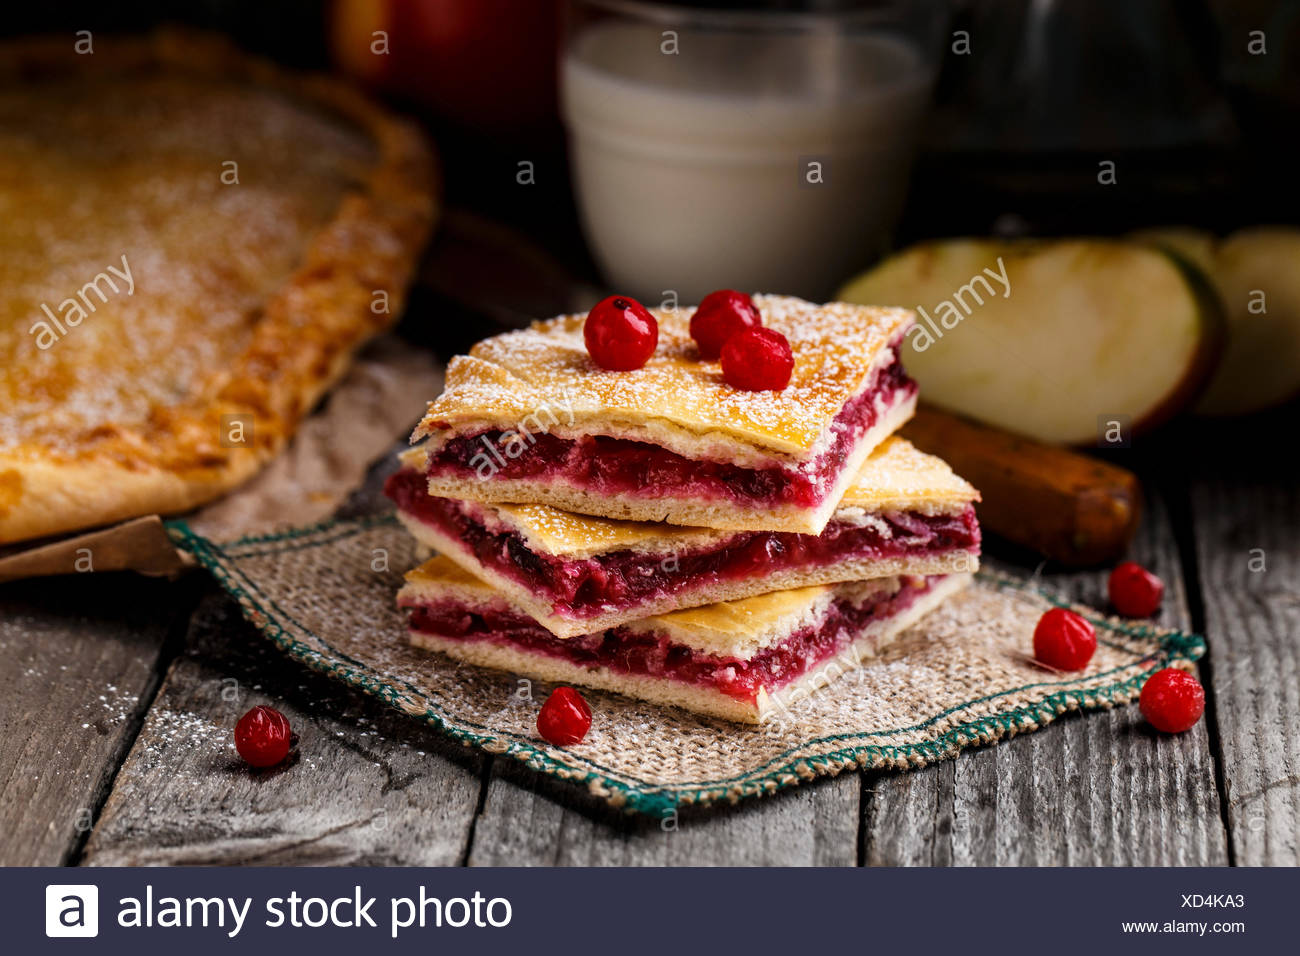 Delicious homemade pie stuffed with cranberries and apple - Stock Image